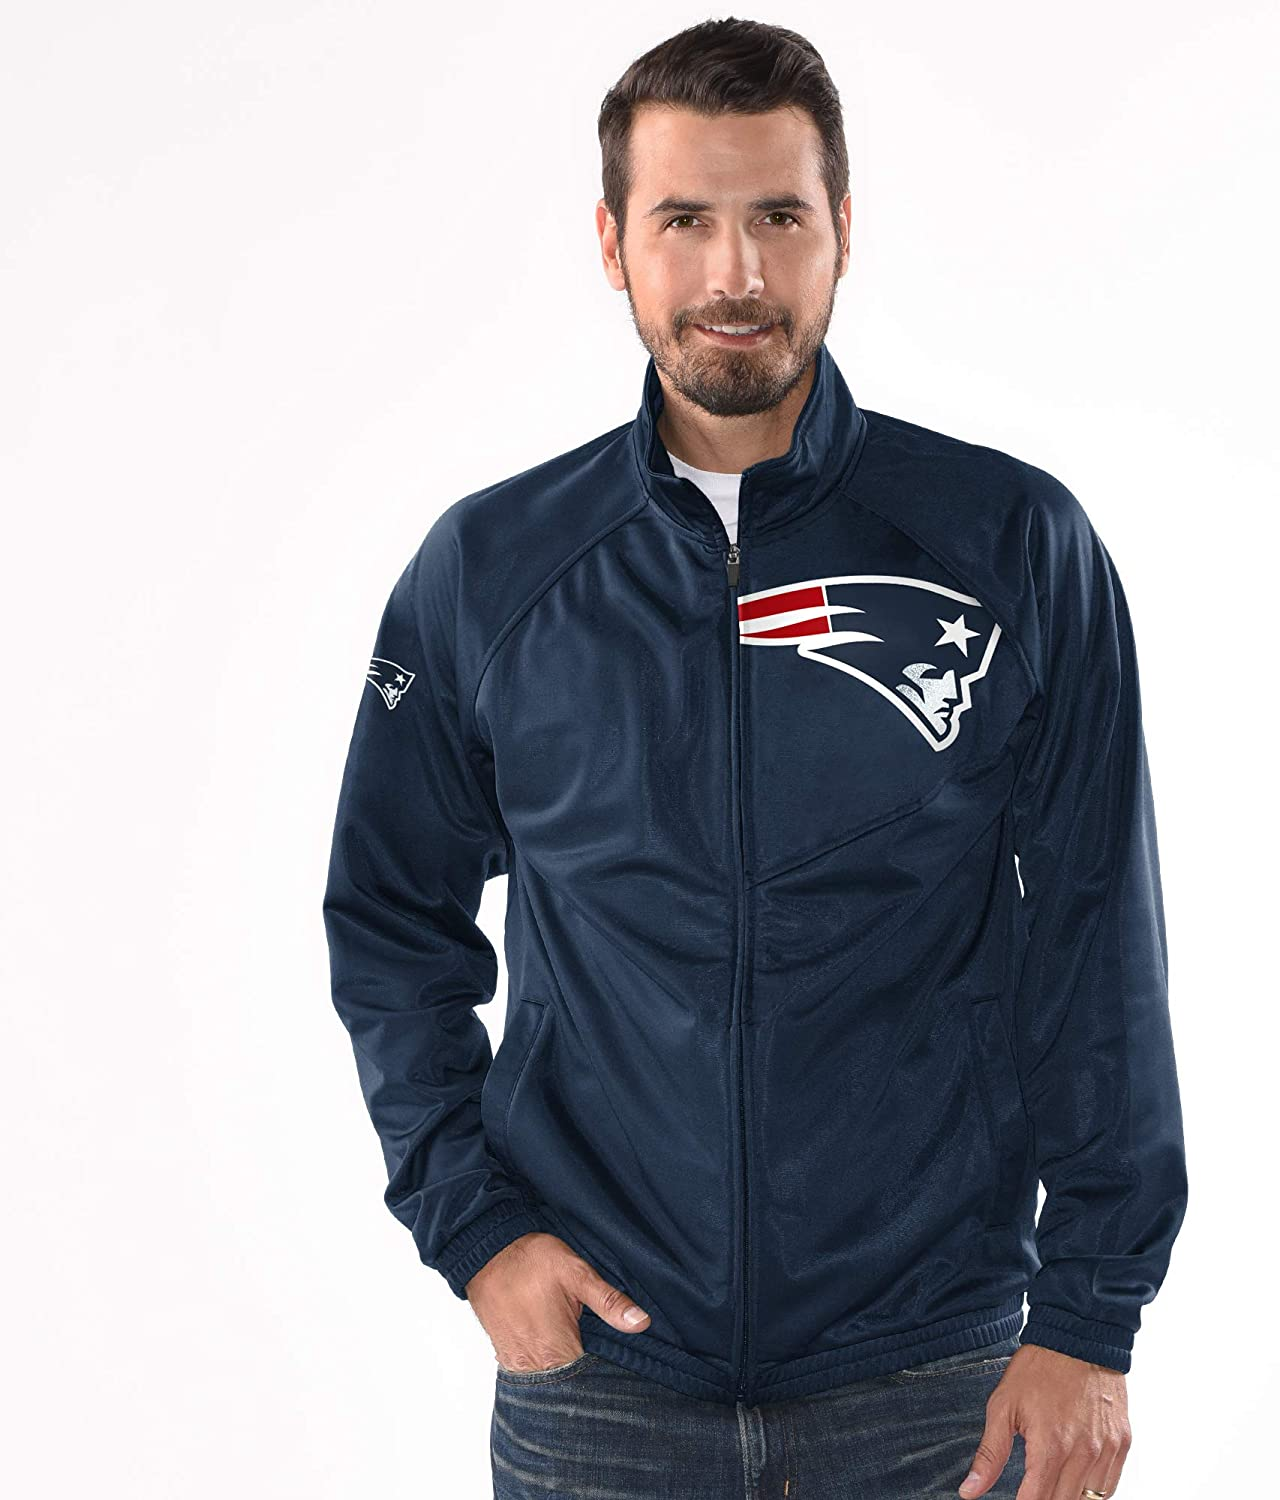 New England Patriots Synergy Track Jacket - Navy Blue by G-III